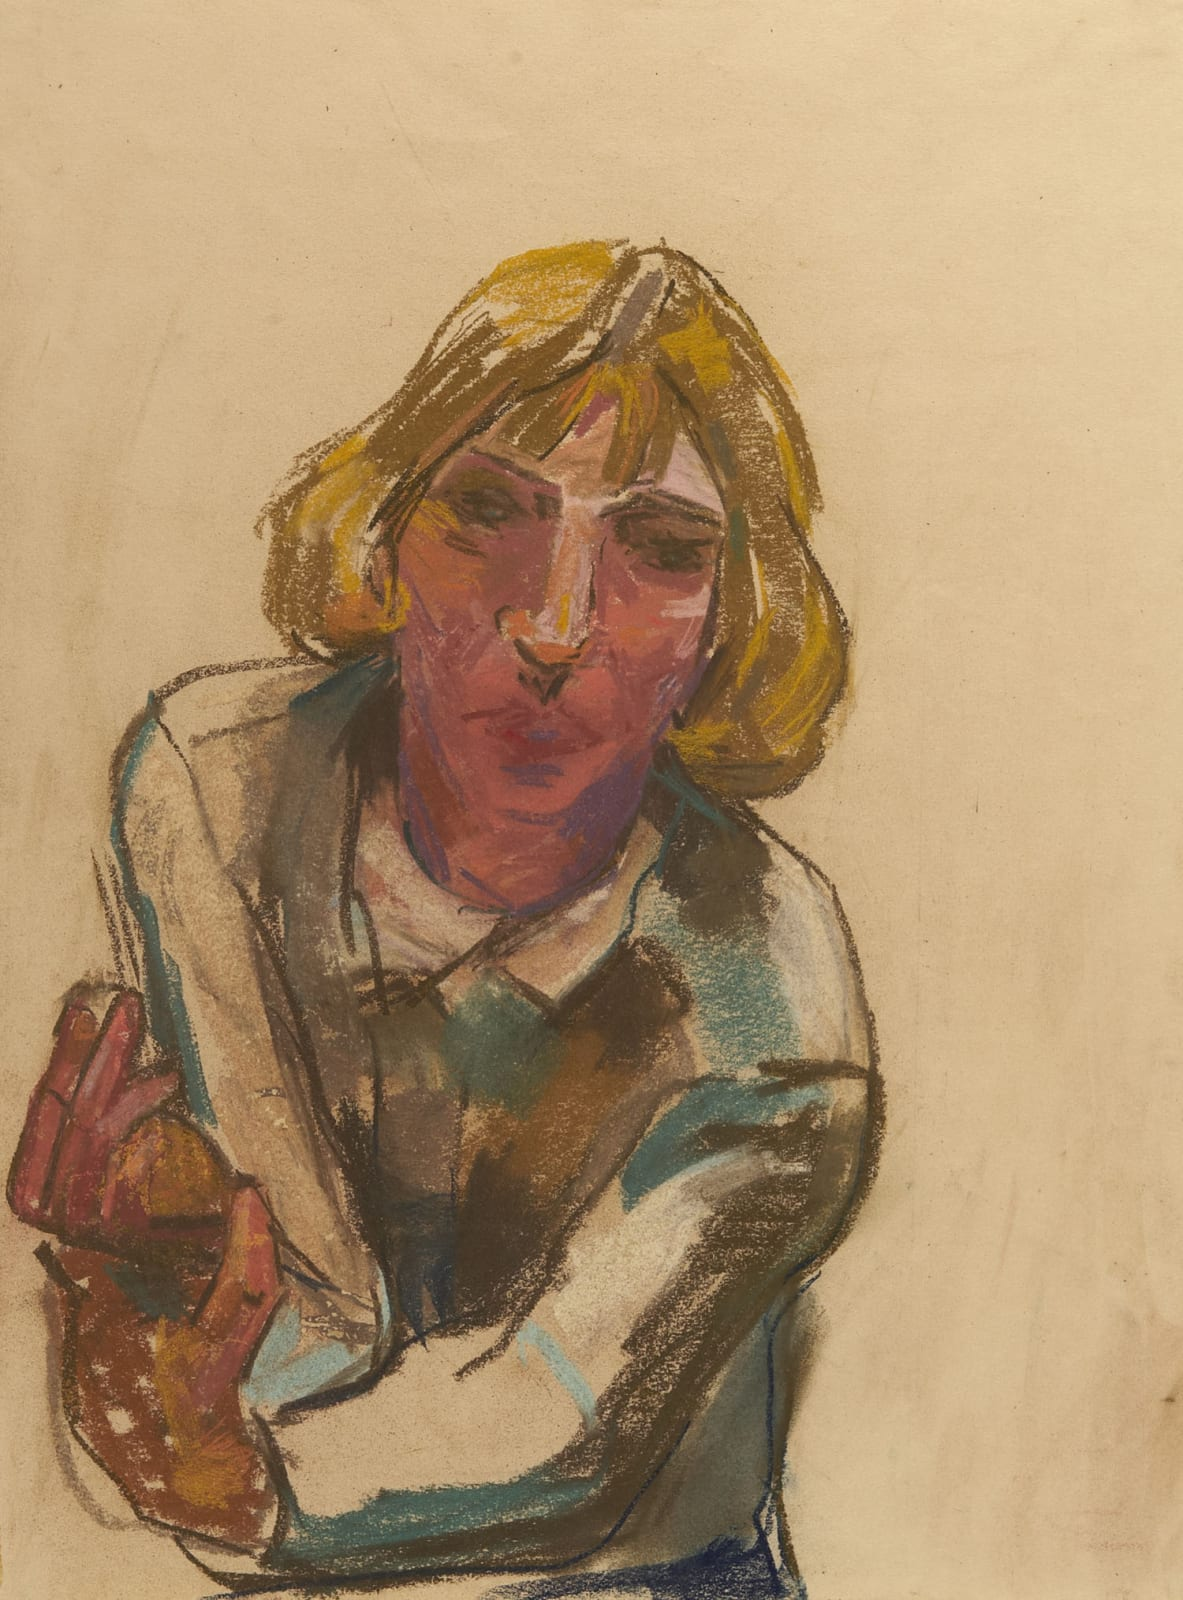 Hilde Goldschmidt (1897-1980) Frau Trautz Schranz 1951 Pastel on paper 50 x 37.4 cm Ben Uri Collection © Hilde Goldschmidt estate To see and discover more about this artist click here